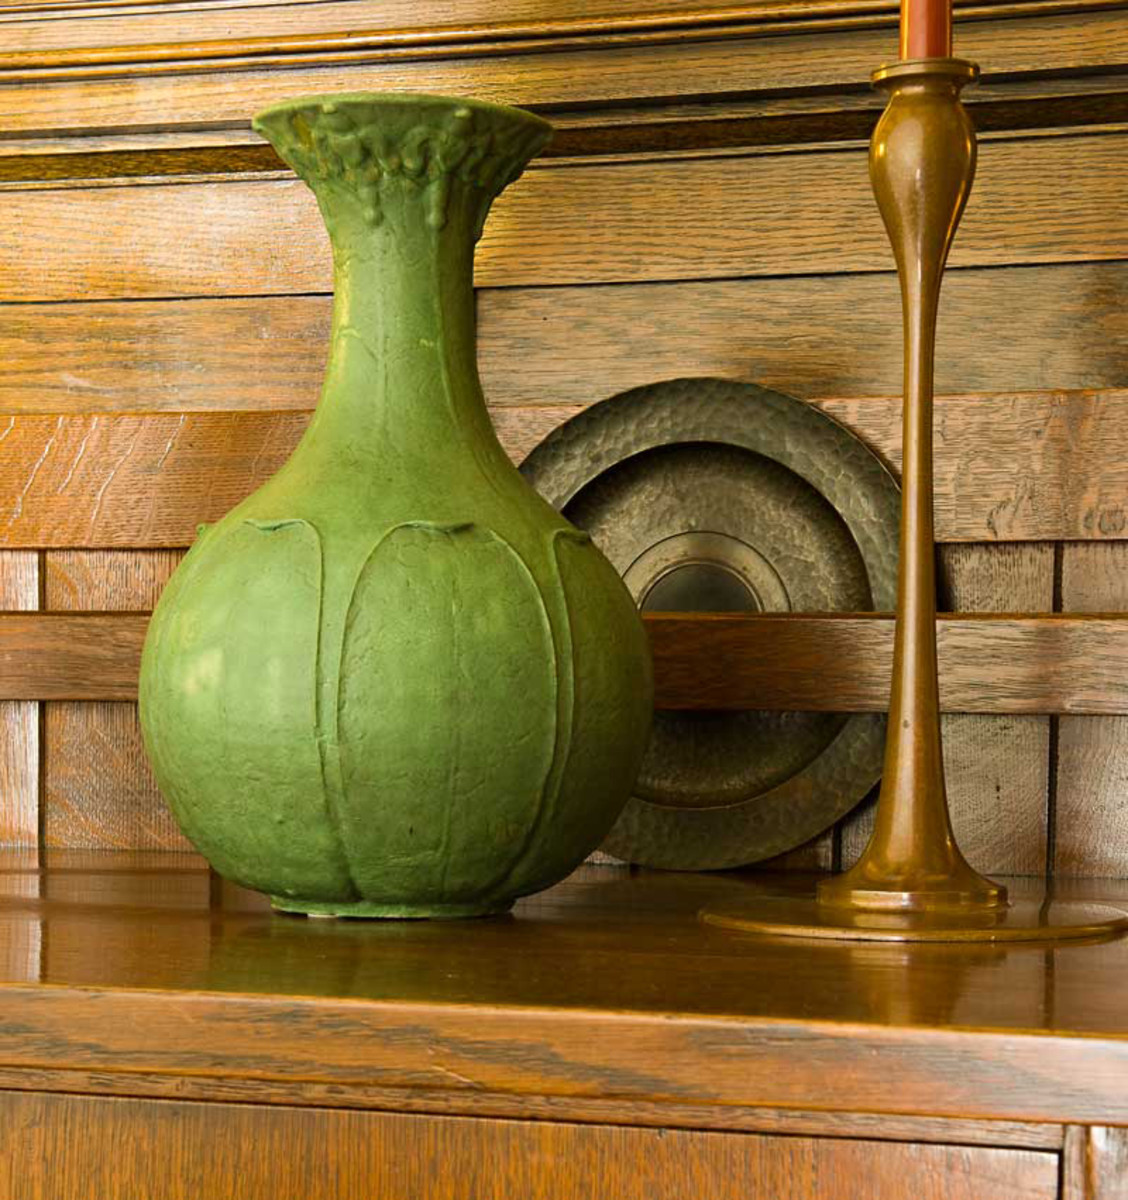 An antique Grueby vase complements the warm tones of oak and copper. Photo: Edward Addeo